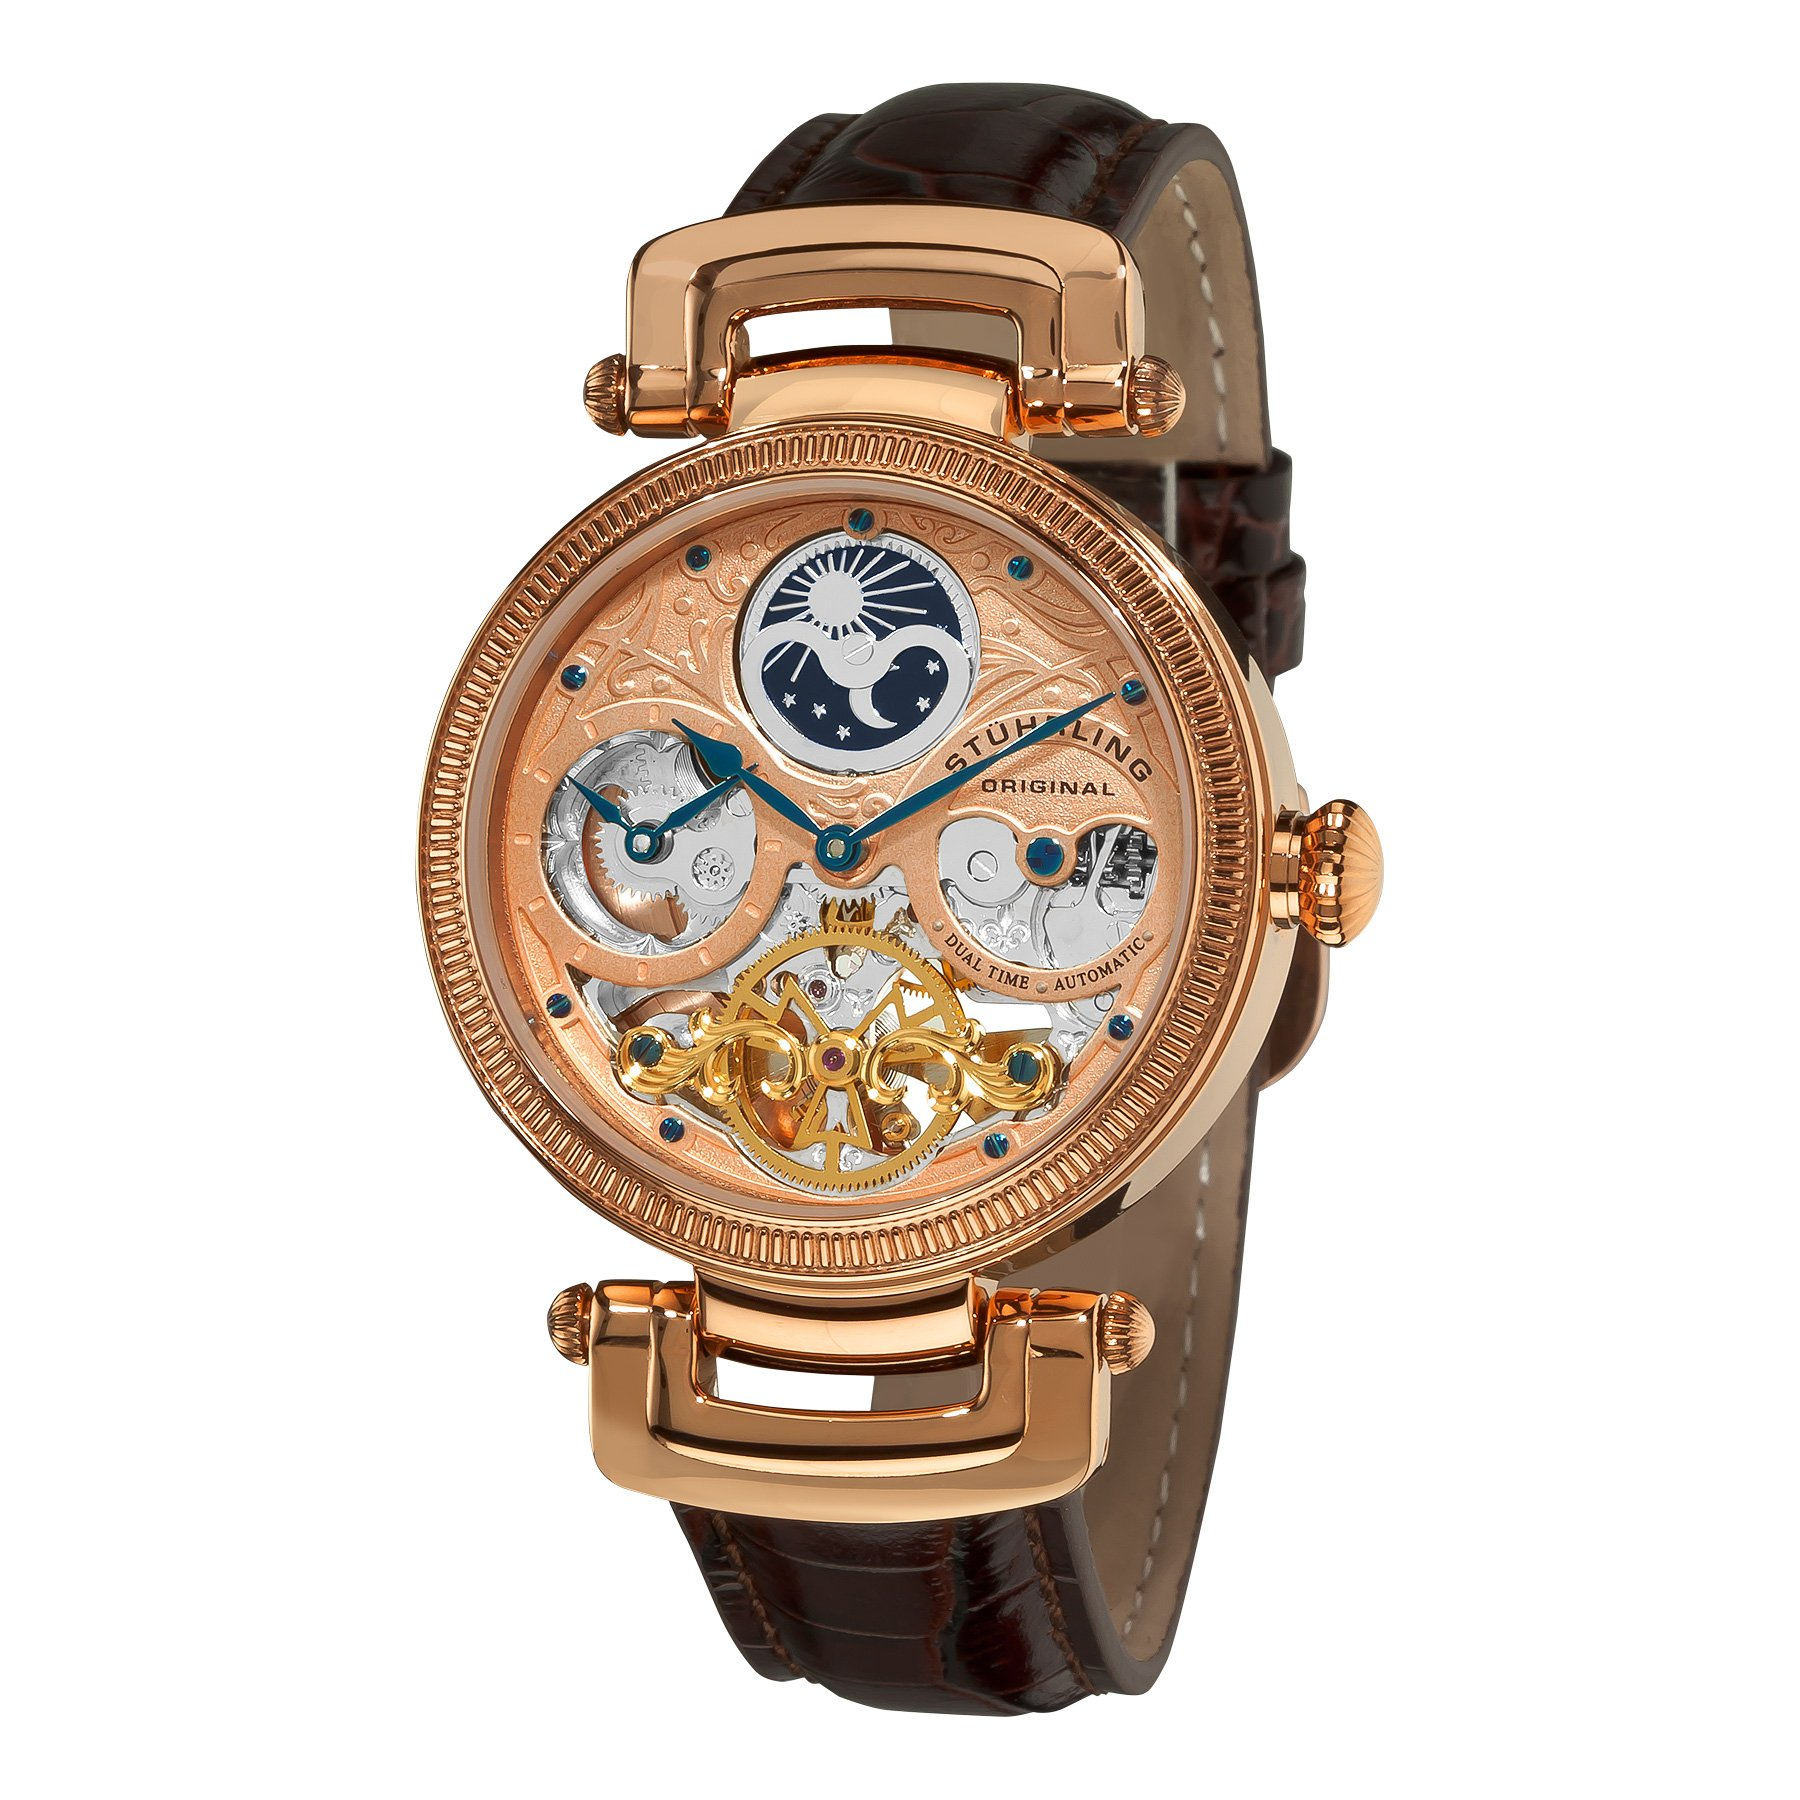 Stuhrling Original Men's 353A.334K14 ''Magistrate'' 18k Rose Gold-Layered Automatic Watch with Leather Band